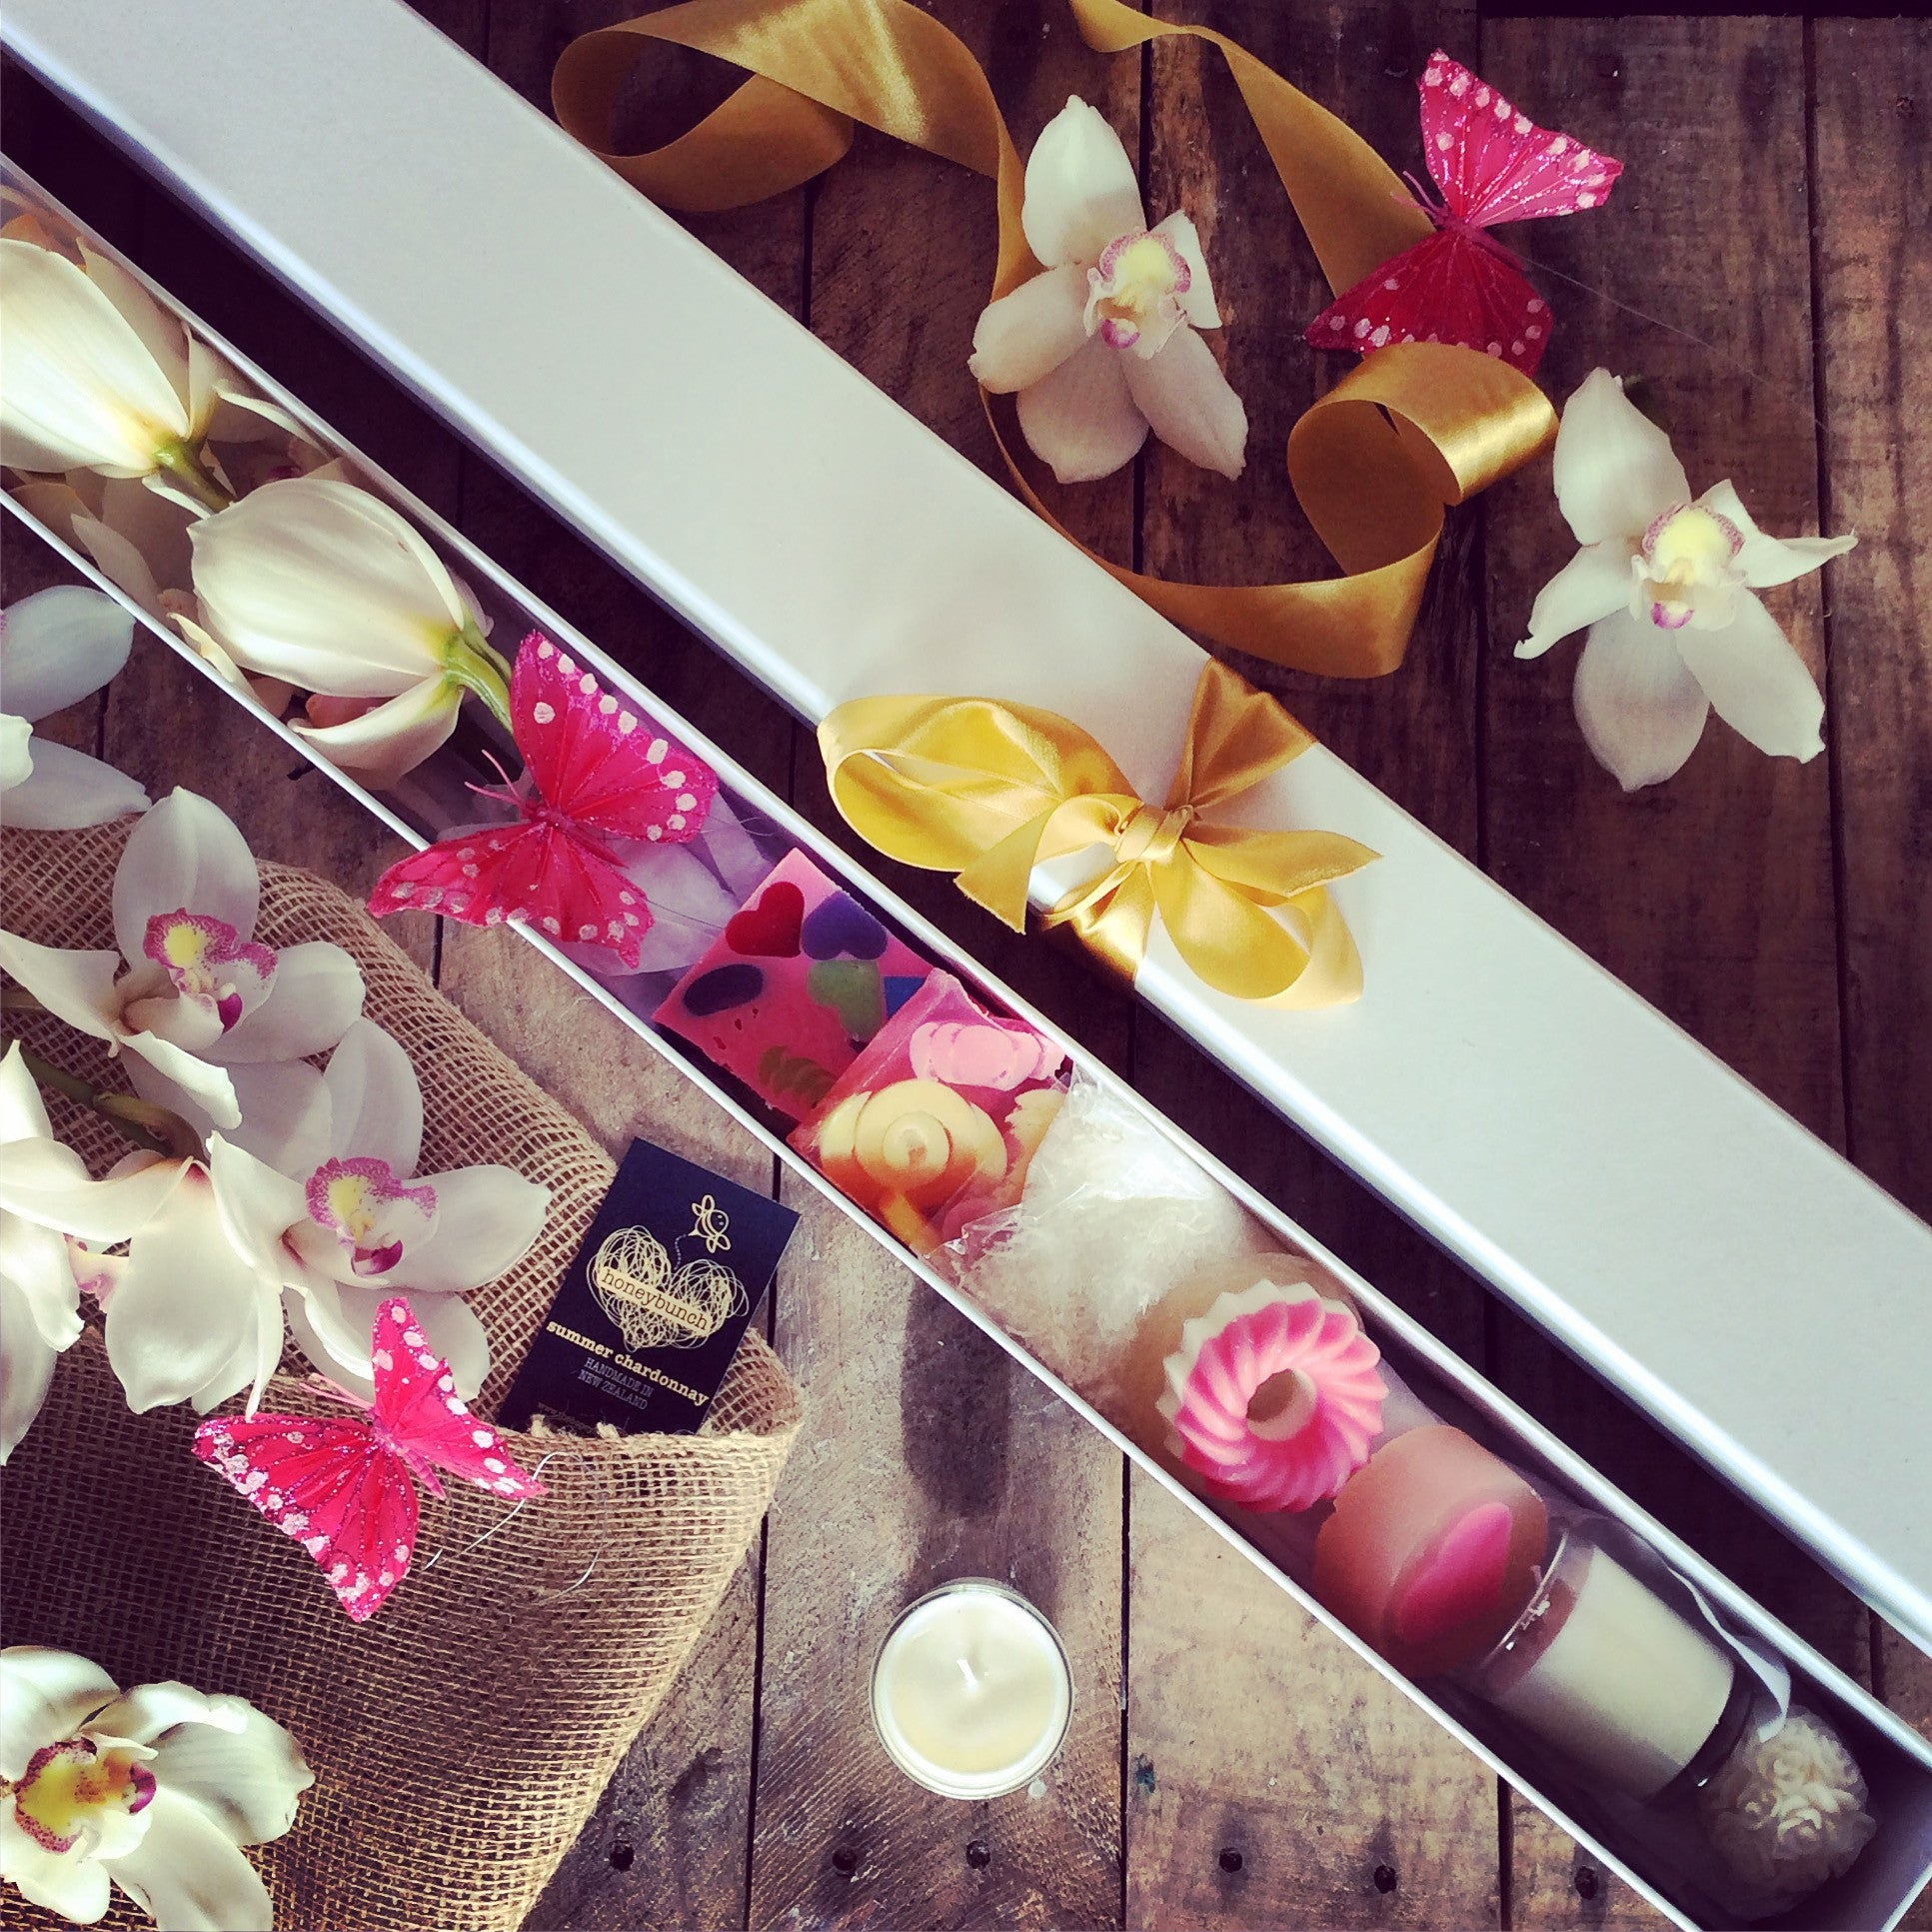 You're orchid Flower delight pamper treat